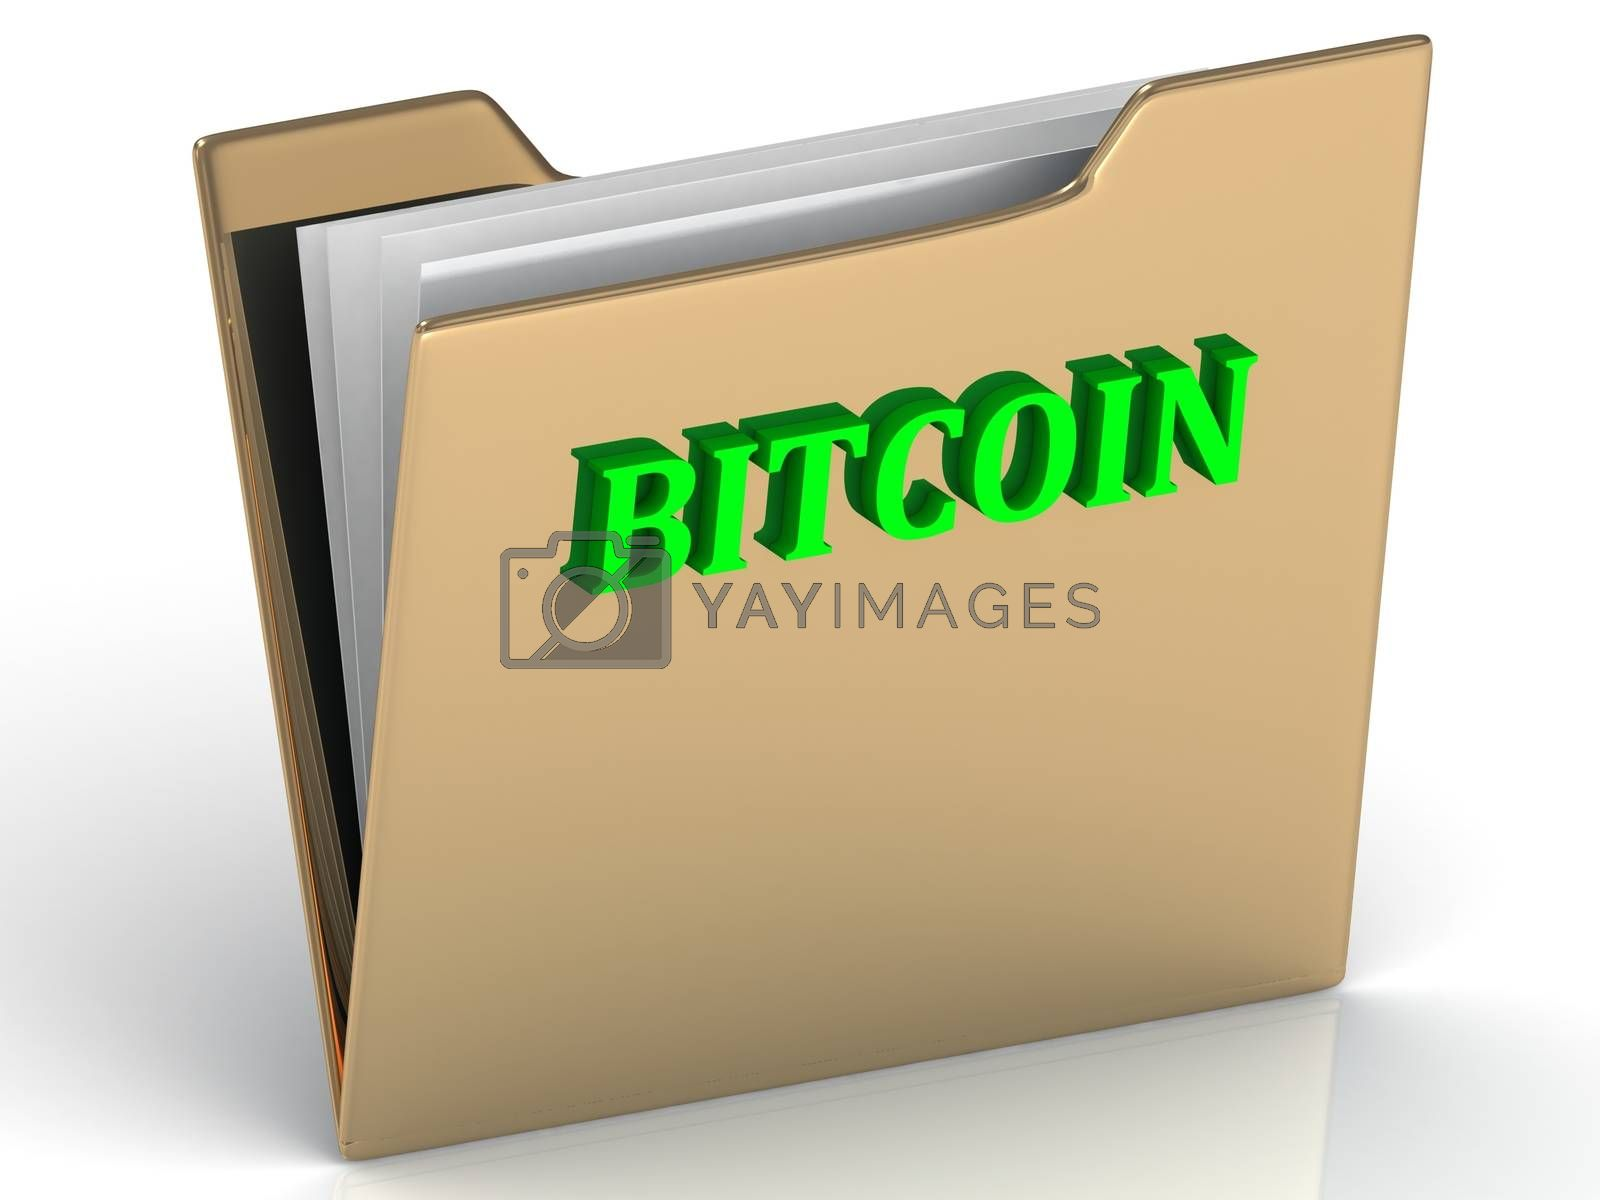 BITCOIN- bright color letters on a gold folder on a white background